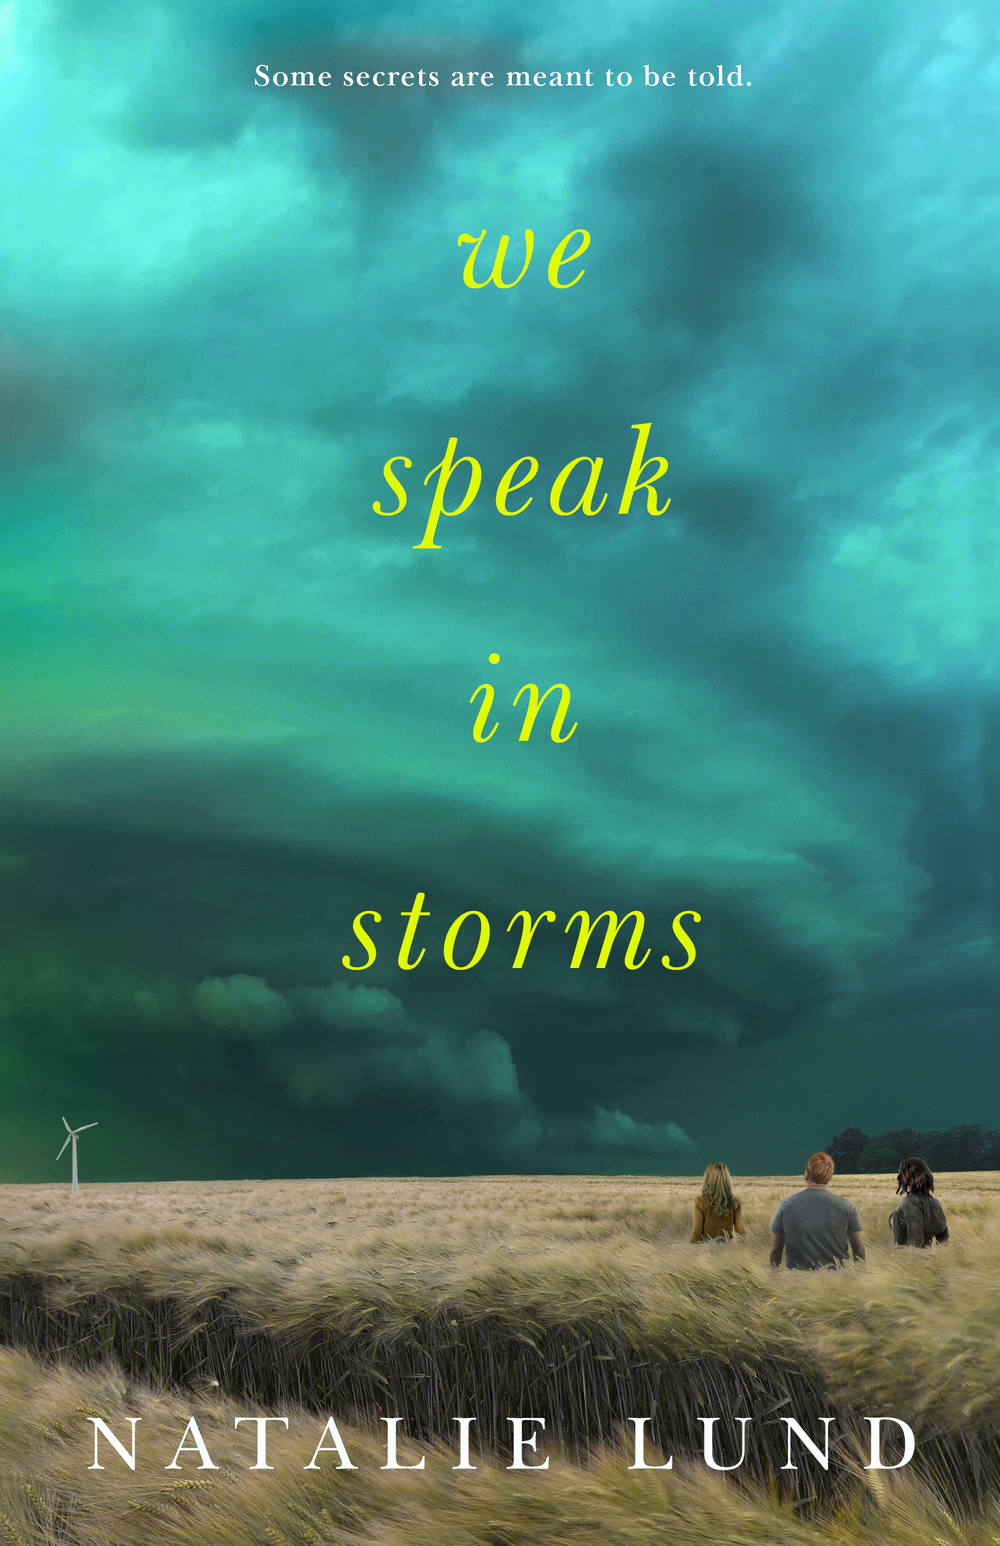 Coming soon - It's been more than fifty years since a tornado tore through a drive-in movie theater in tiny Mercer, Illinois, leaving dozens of teens — a whole generation of Mercerites — dead in its wake. So when another tornado touches down in the exact same spot on the anniversary of this small-town tragedy, the town is shaken.For Brenna Ortiz, Joshua Calloway, and Callie Keller, the apprehension is more than just a feeling. Though they seem to share nothing more than a struggle to belong, the teens' paths continue to intersect, bringing them together when they least expect it, and perhaps, when they need it most. Both the living and the dead have secrets and unresolved problems, but they may be able to find peace and move forward–if only they work together.